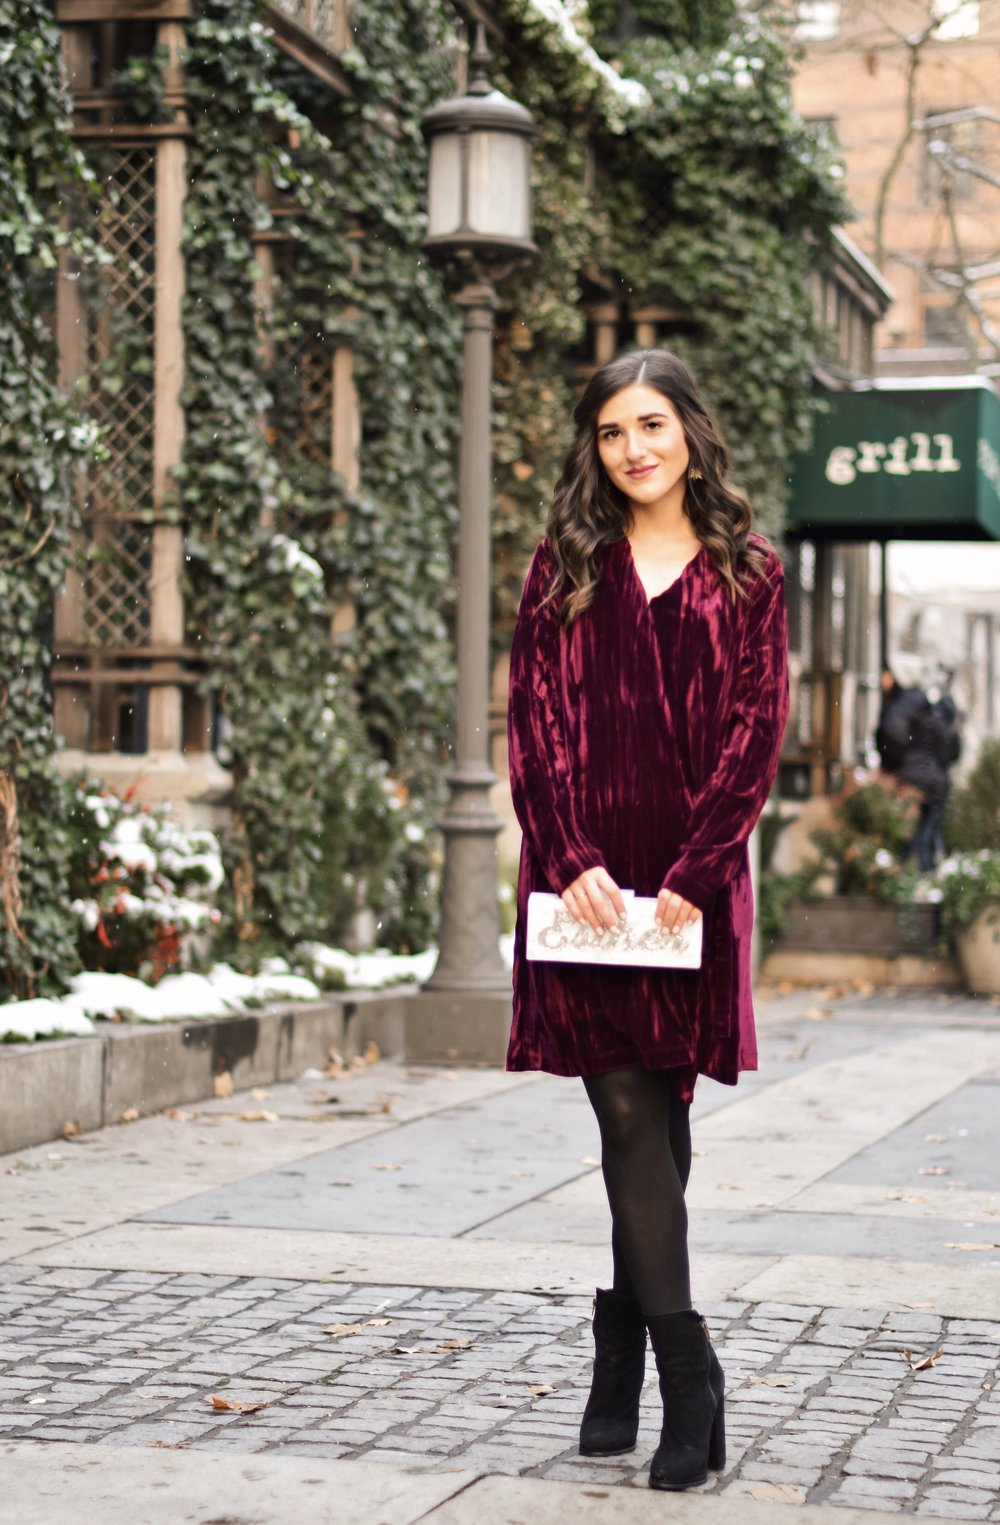 17 Tips On Building An Instagram Following Maroon Velvet Dress Black Booties Esther Santer Fashion Blog NYC Street Style Blogger Outfit OOTD Trendy Zara Online Shopping Winter Monogram Box Bag Clutch M4D3 Shoes Hue Tights Wavy Hair Wear Classic Simple.jpg